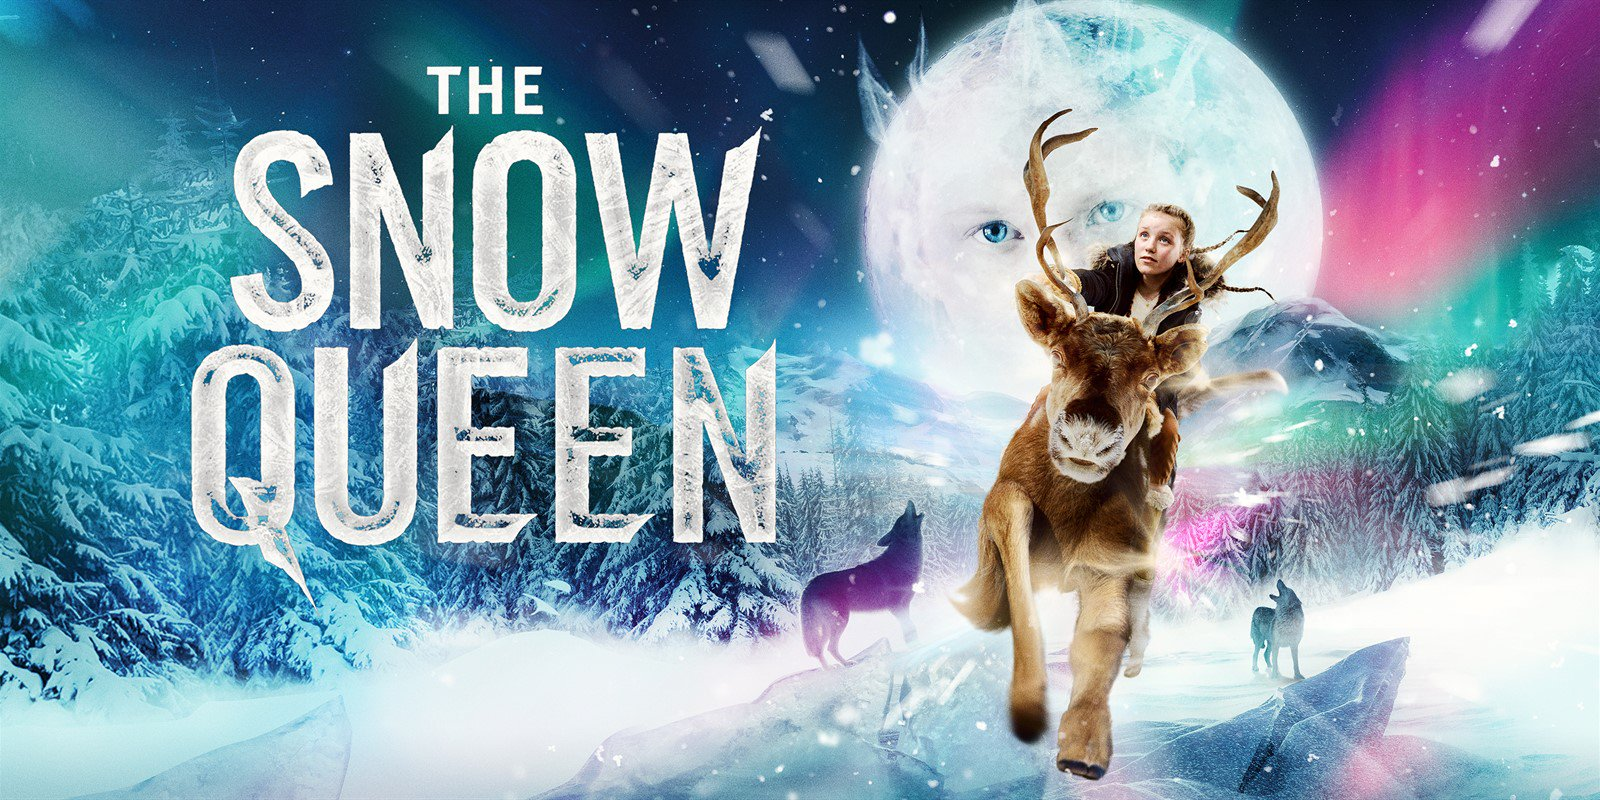 Review & Top Tips | Northern Stage Newcastle Christmas Show 2019 - The Snow Queen